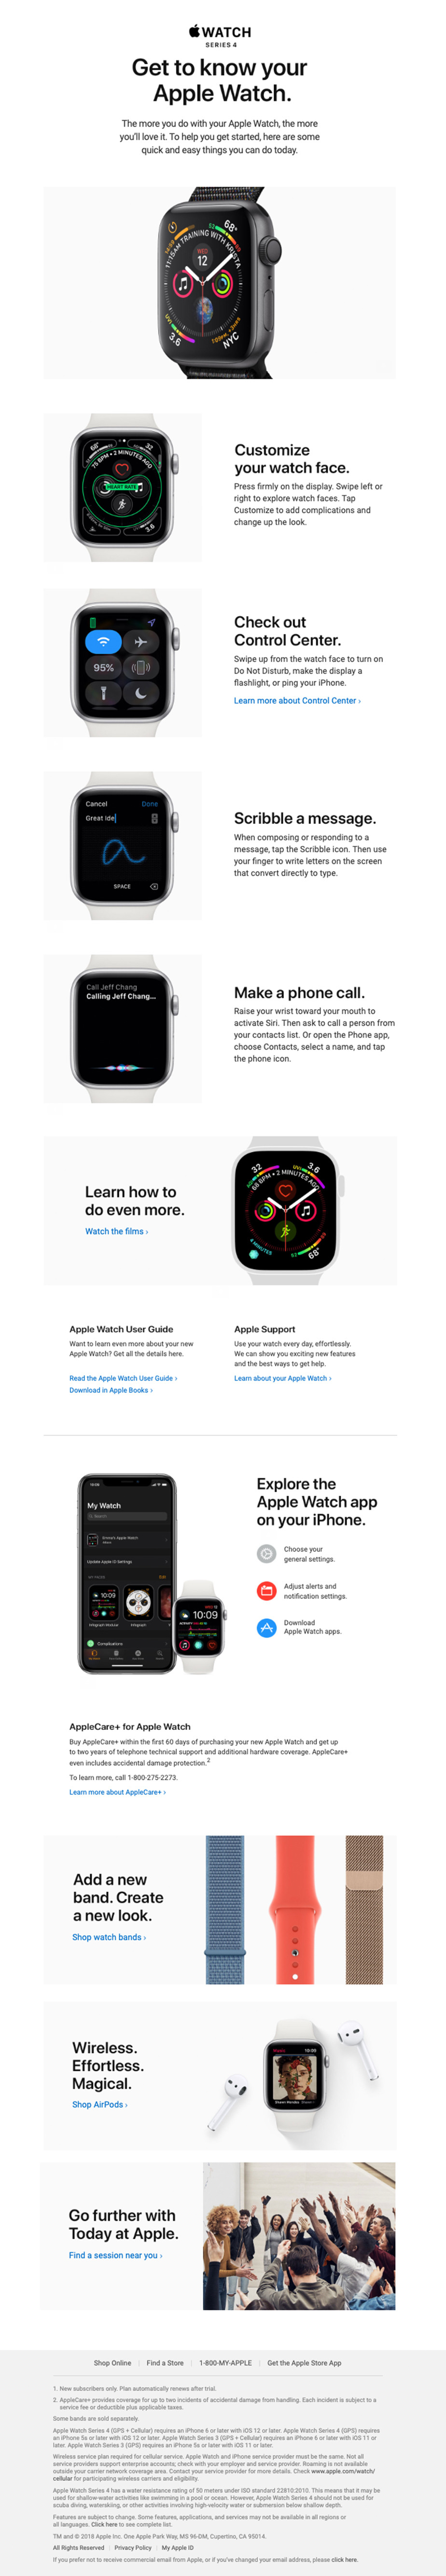 Welcome email by Apple